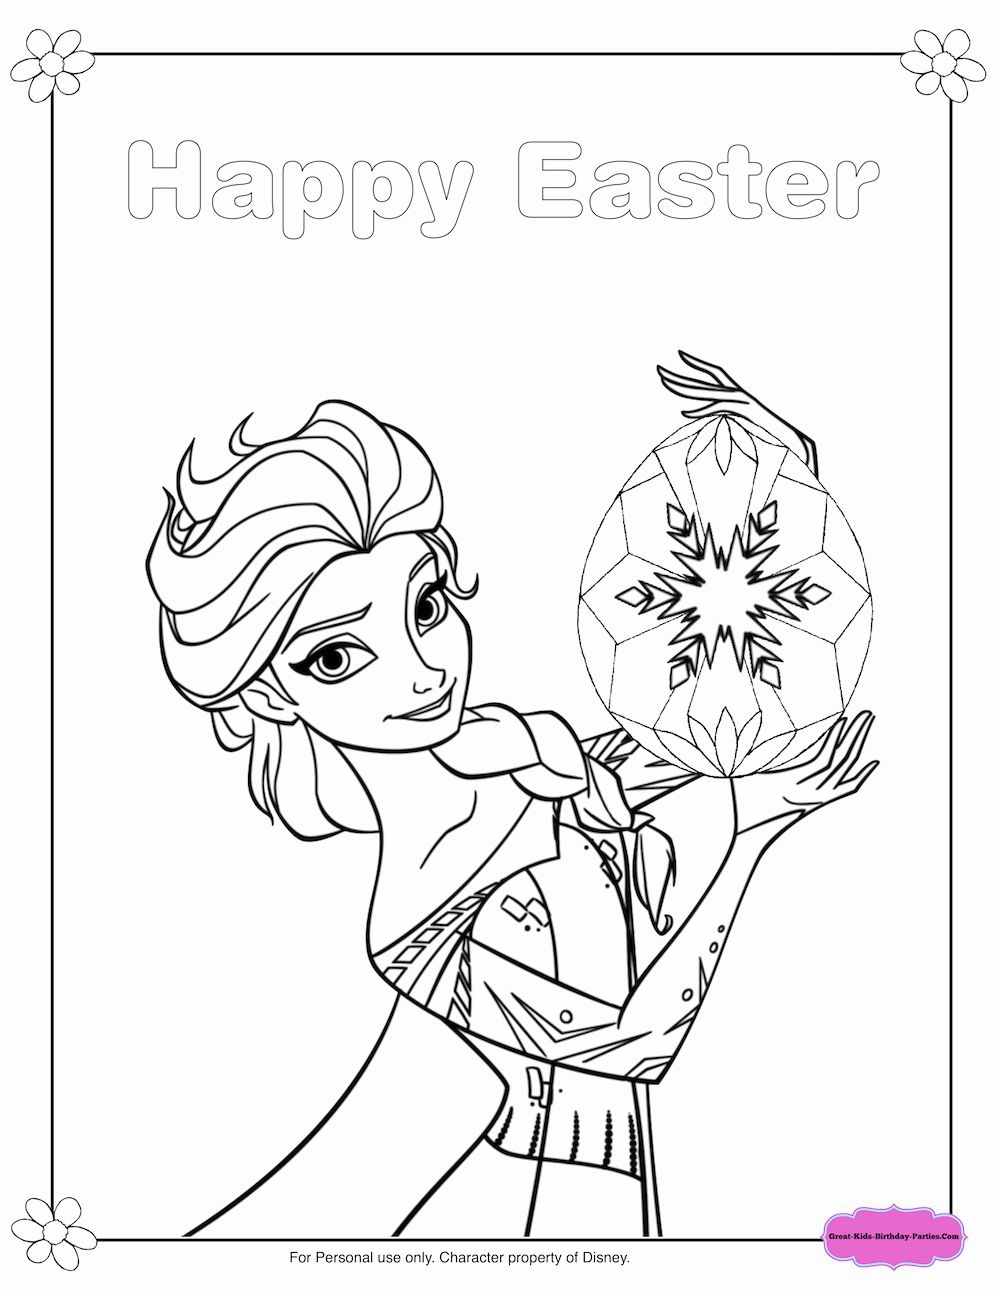 Easter Coloring Pages Disney Beautiful Easter Printables Easter Martin Chandra Co Easter Coloring Pages Frozen Coloring Pages Easter Coloring Pages Printable